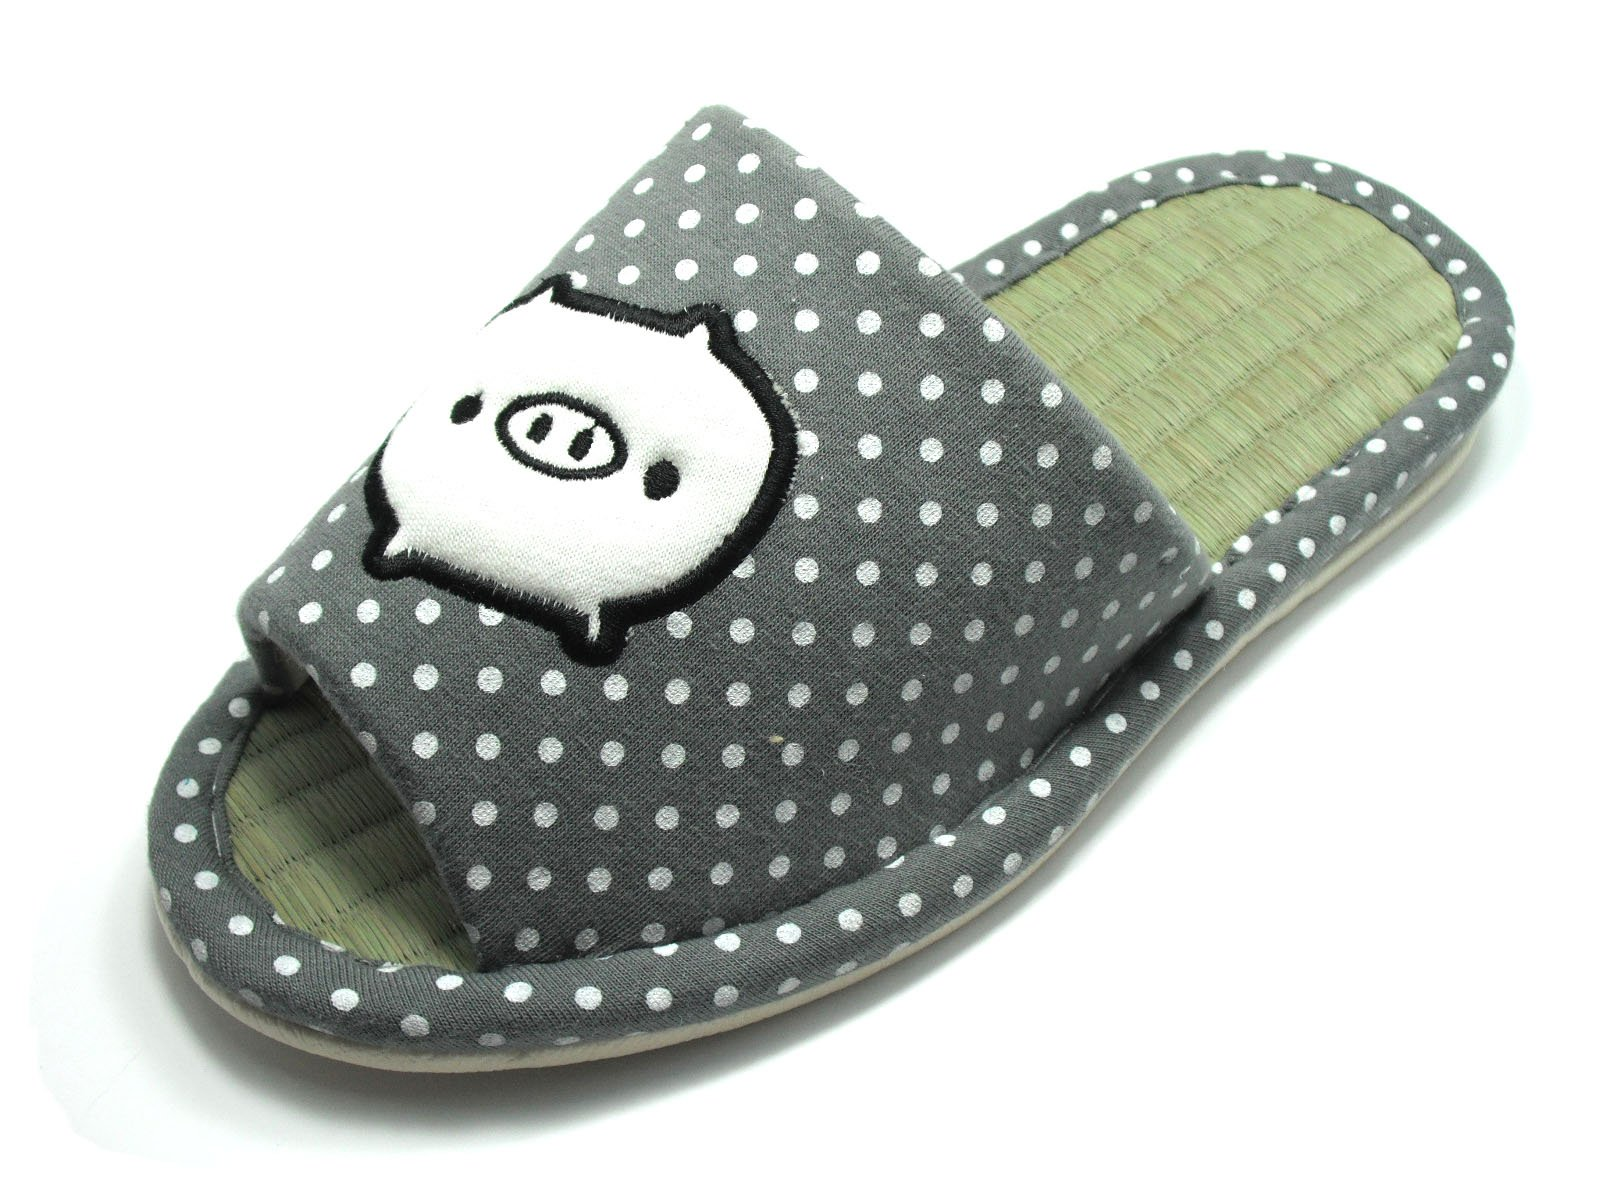 KNP26032T/Indoor Bamboo Breathable Slippers with Baby Piggy Available Four Sizes and Two Colors (S(5-6)/35-36 S EU, Grey)